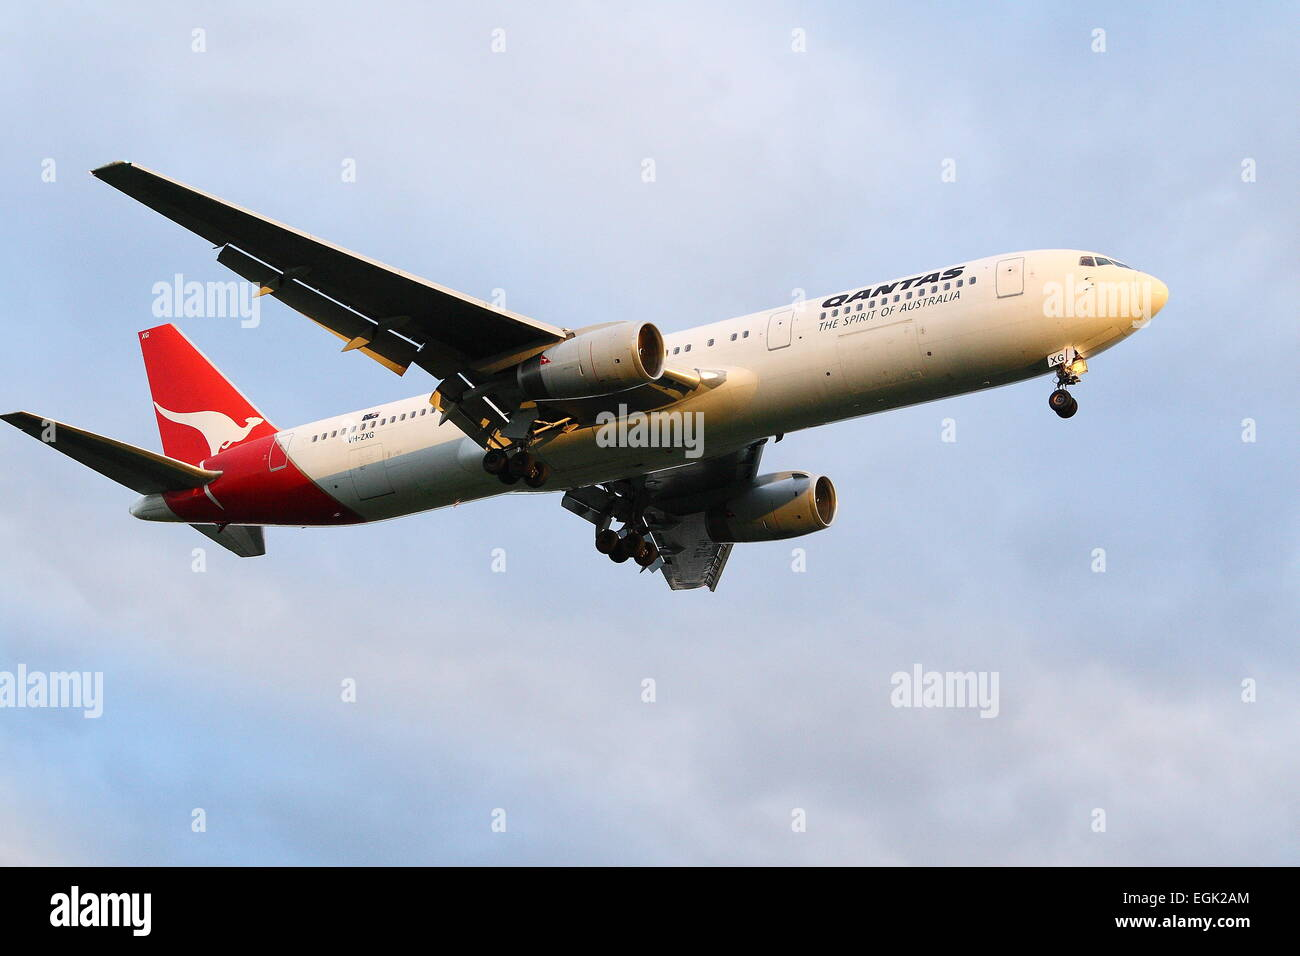 Qantas airplane flying in the sky - Stock Image